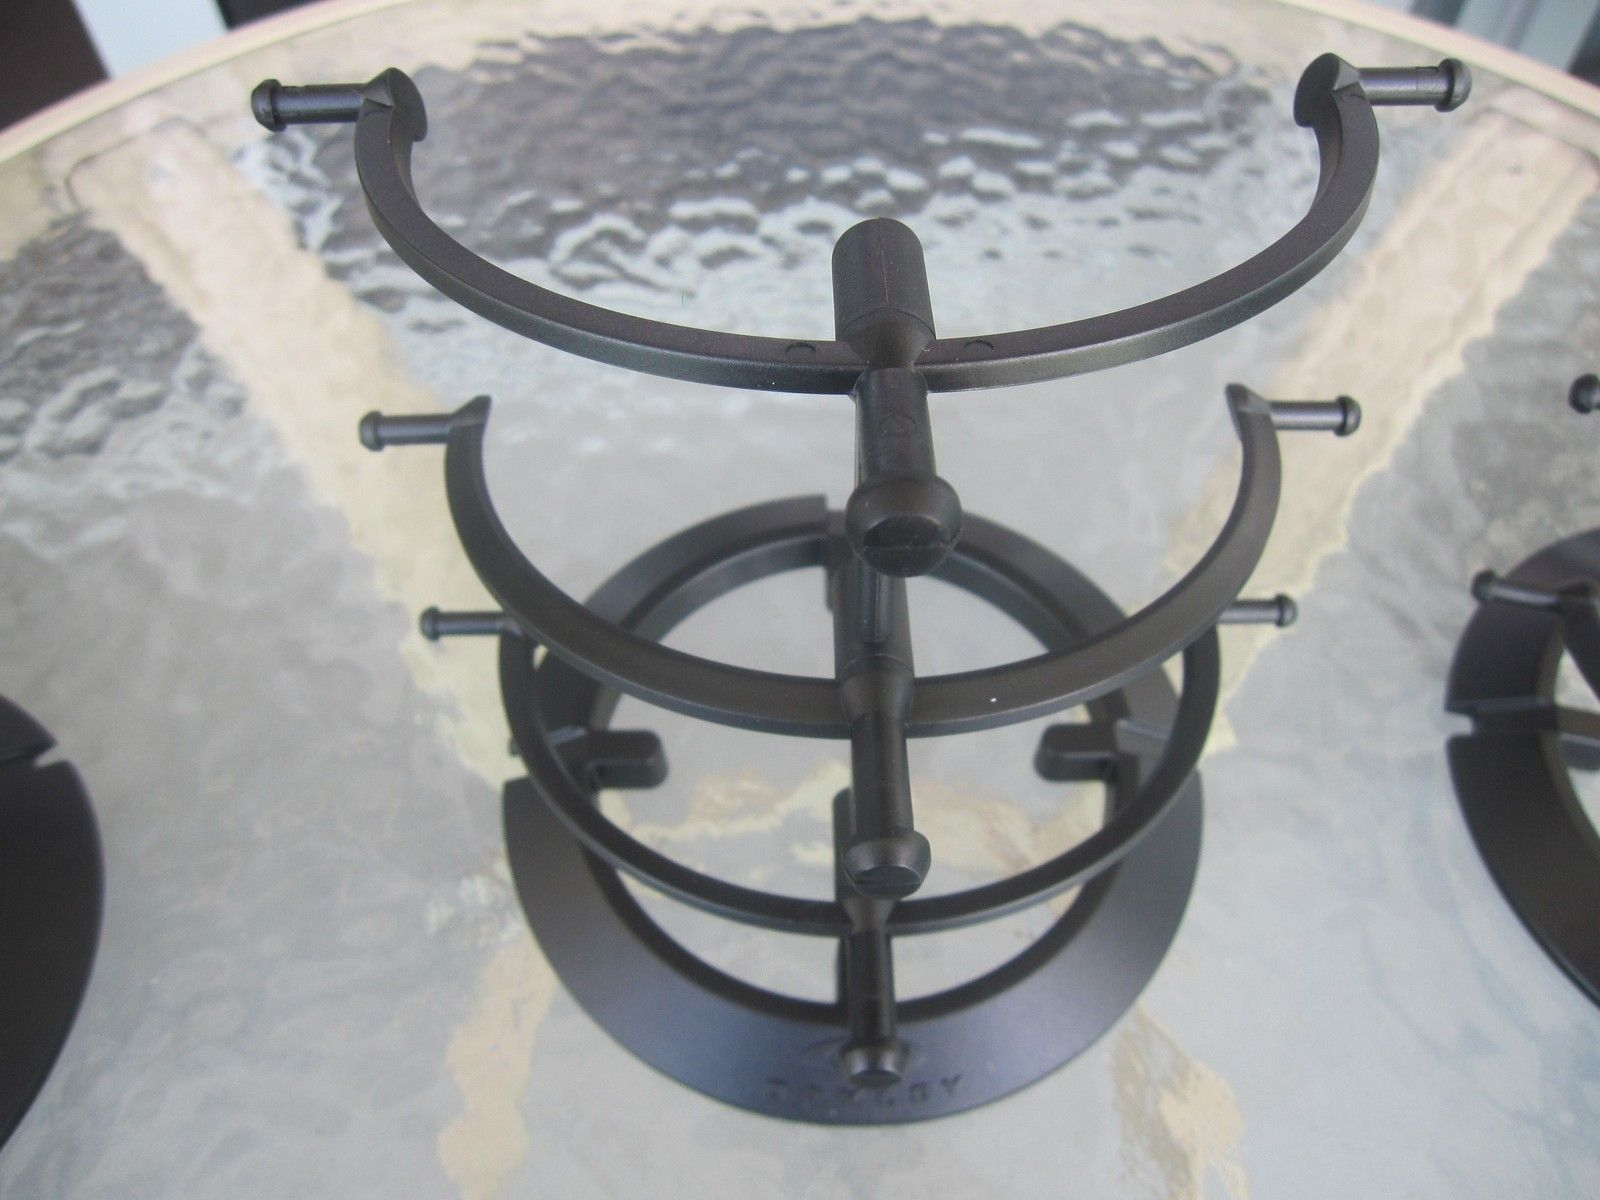 Display stands - black plastic - Priced to sell fast - All SOLD - IMG_2511.JPG